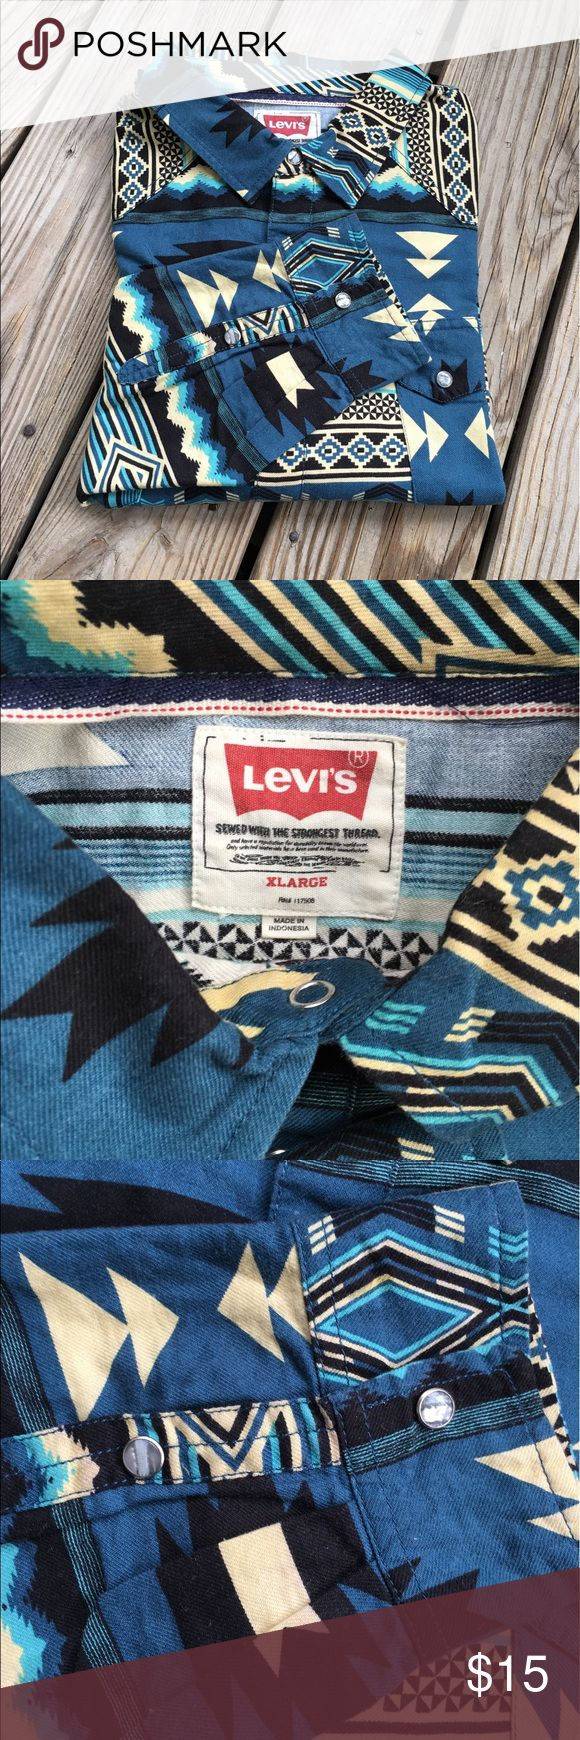 ⛺️🌋 LEVIS TRIBAL SHIRT MEN'S 🌋⛺️ 🌋⛺️ In excellent used condition , no flaws ⛺️🌋 LEVIS Shirts Casual Button Down Shirts